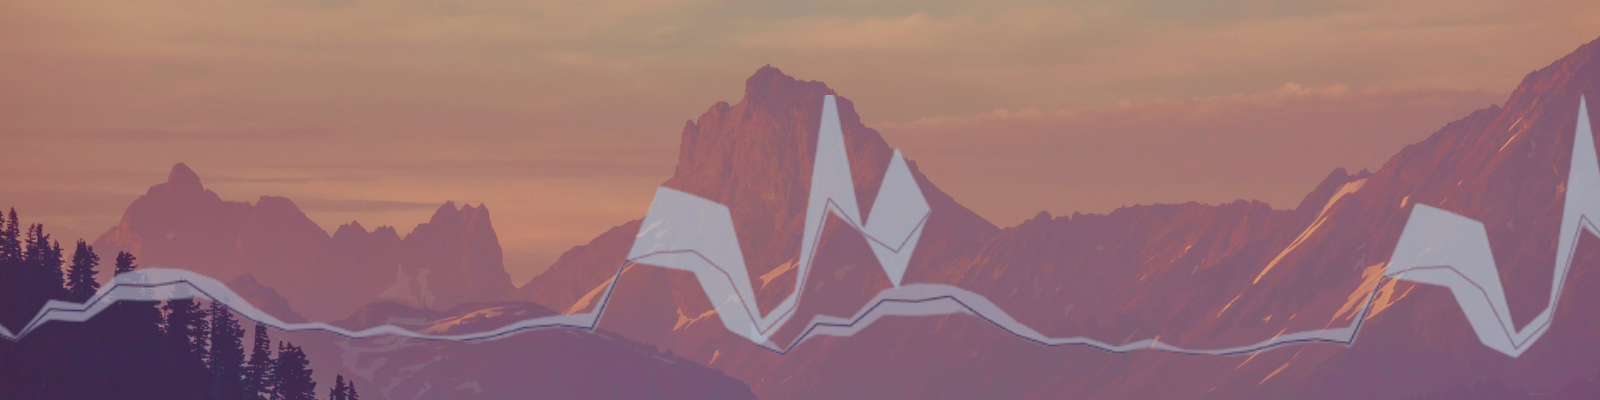 Cascade mountain range with graphic overlay